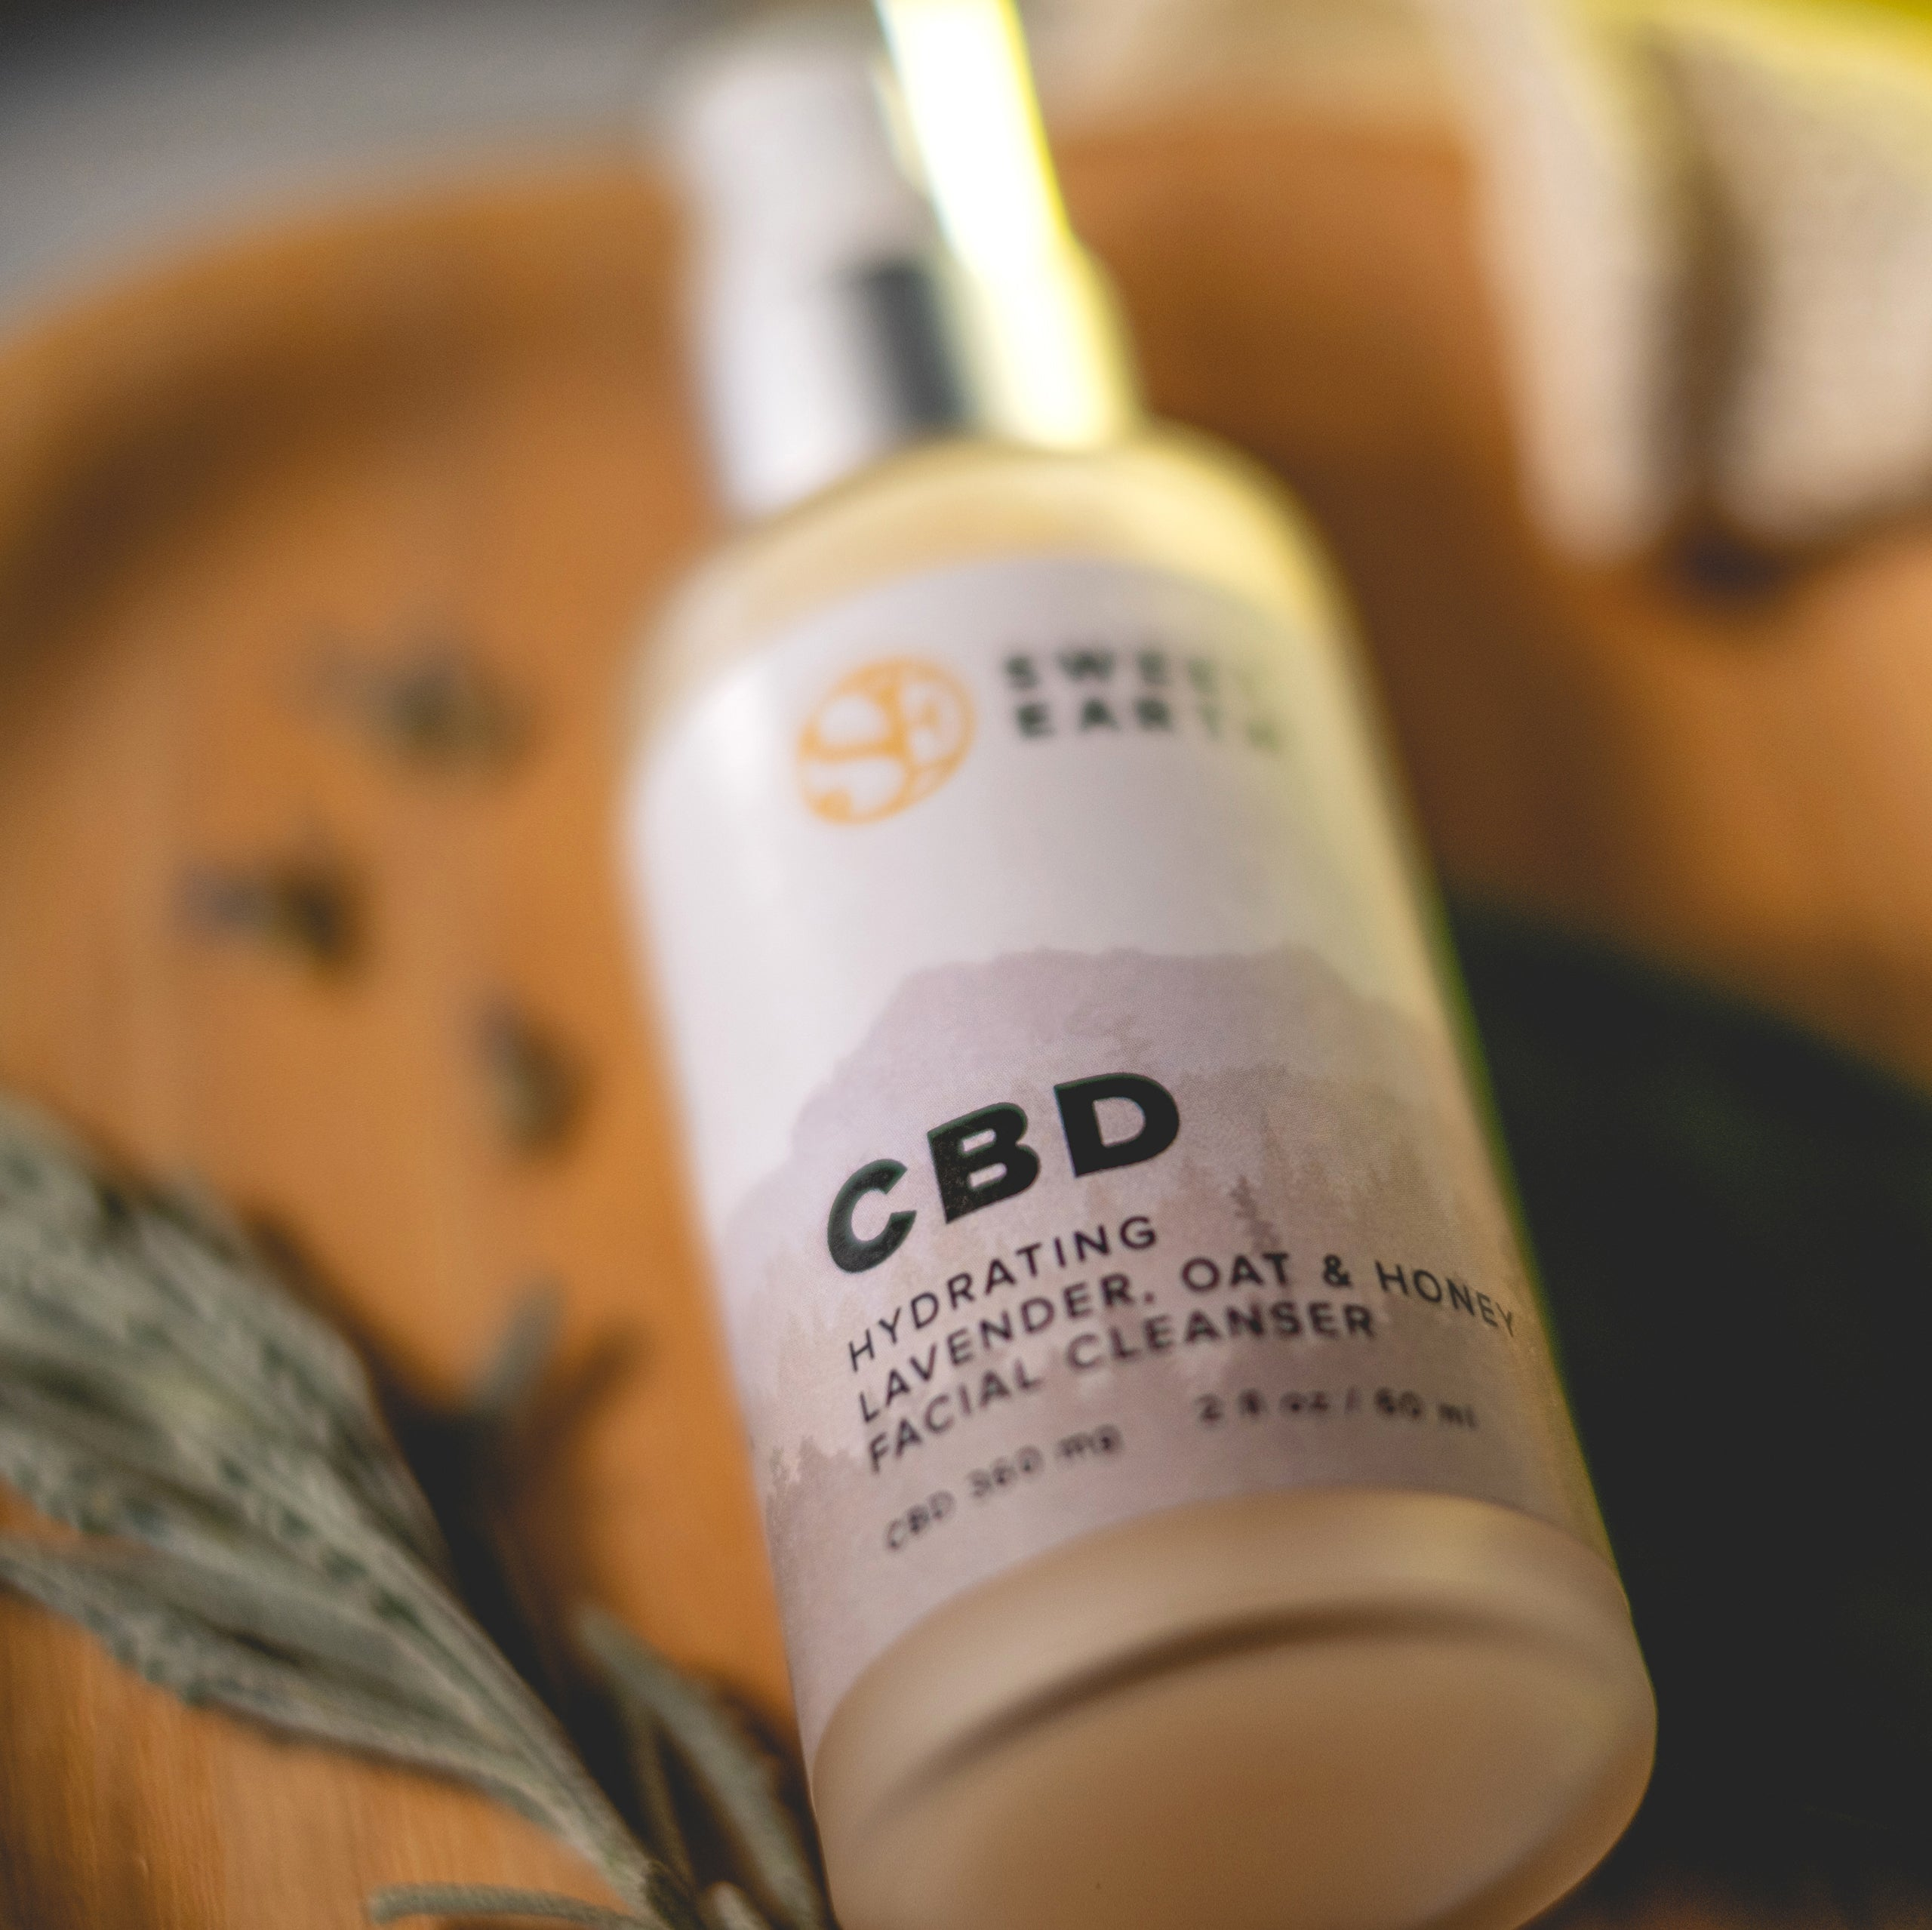 CBD Hydrating Lavender, Oat & Honey Facial Cleanser